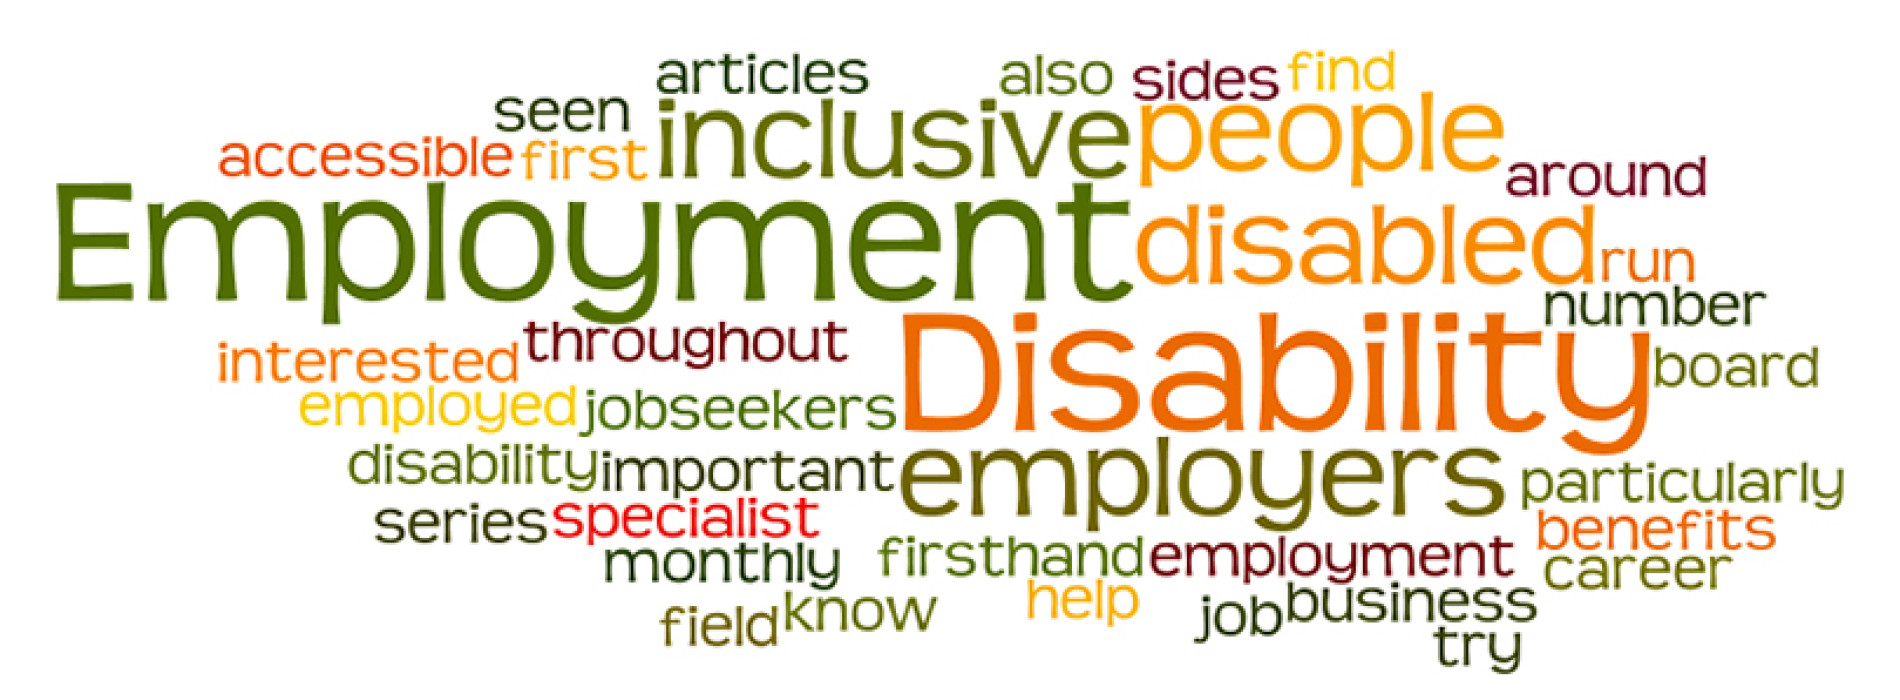 Disability and employment: answering difficult interview questions